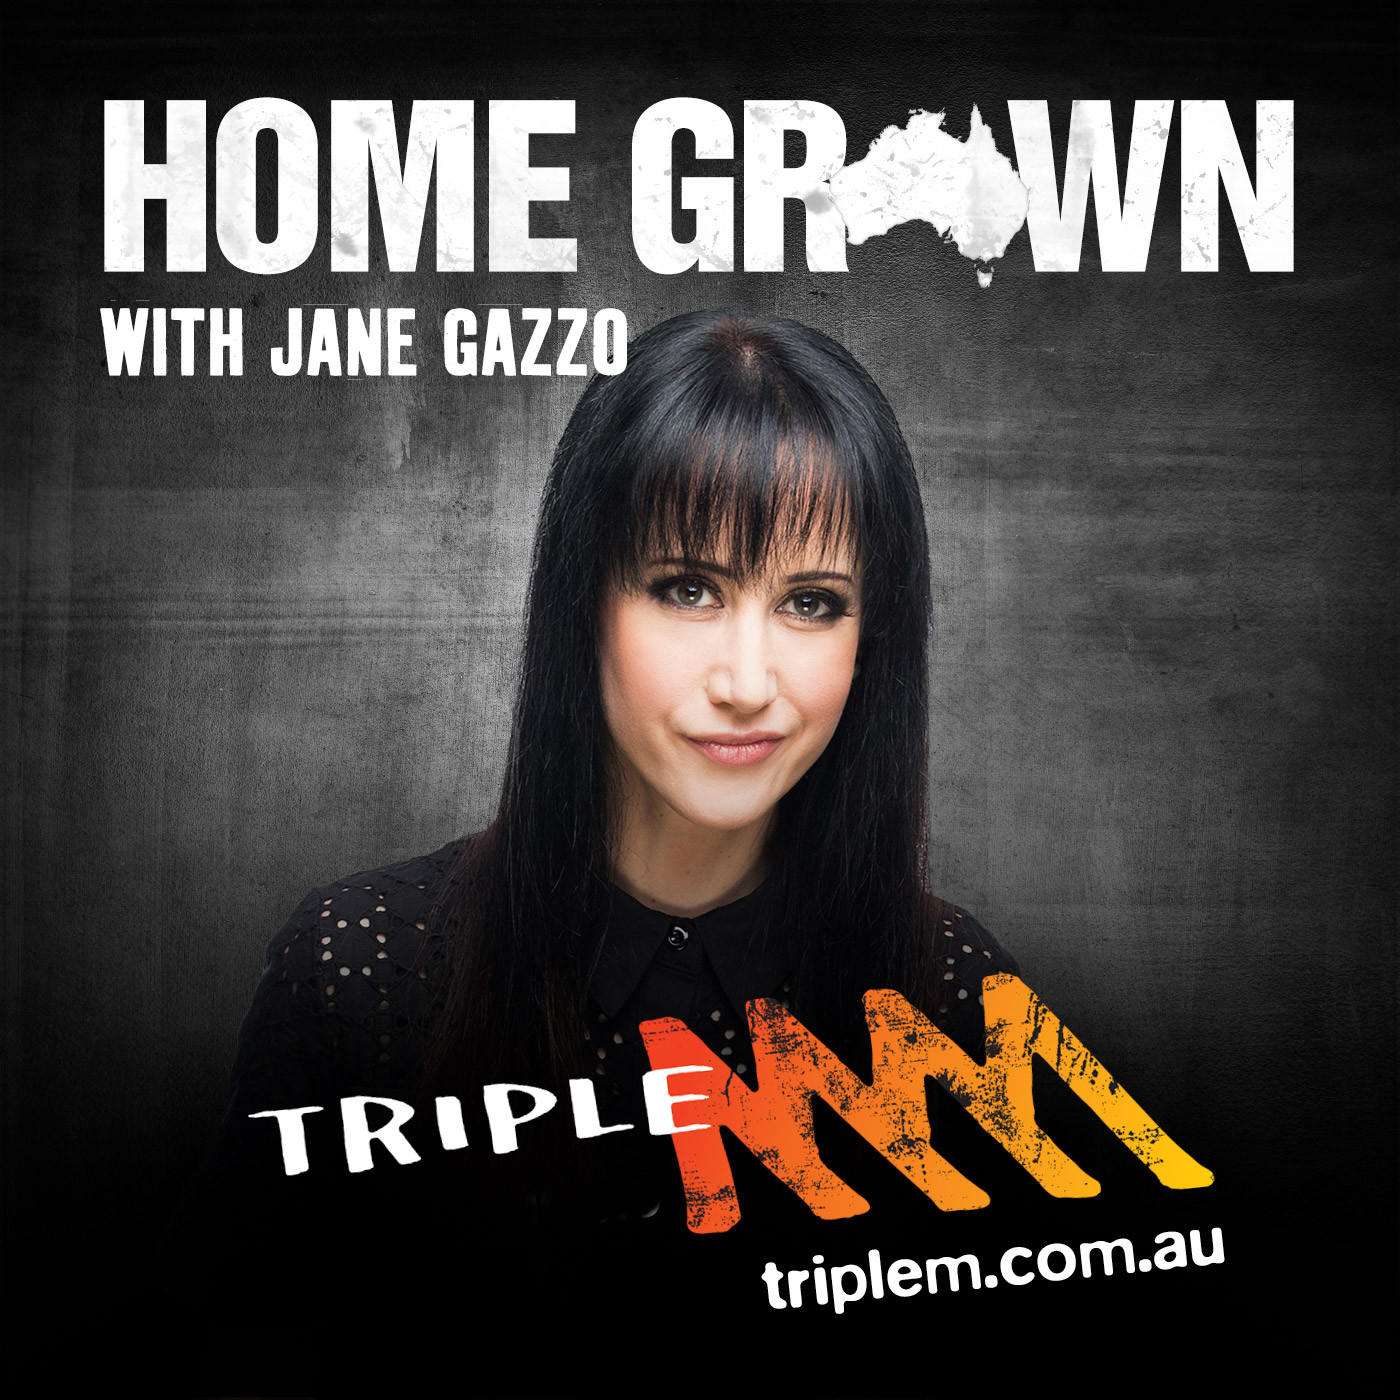 The Home Grown with Jane Gazzo Catch Up